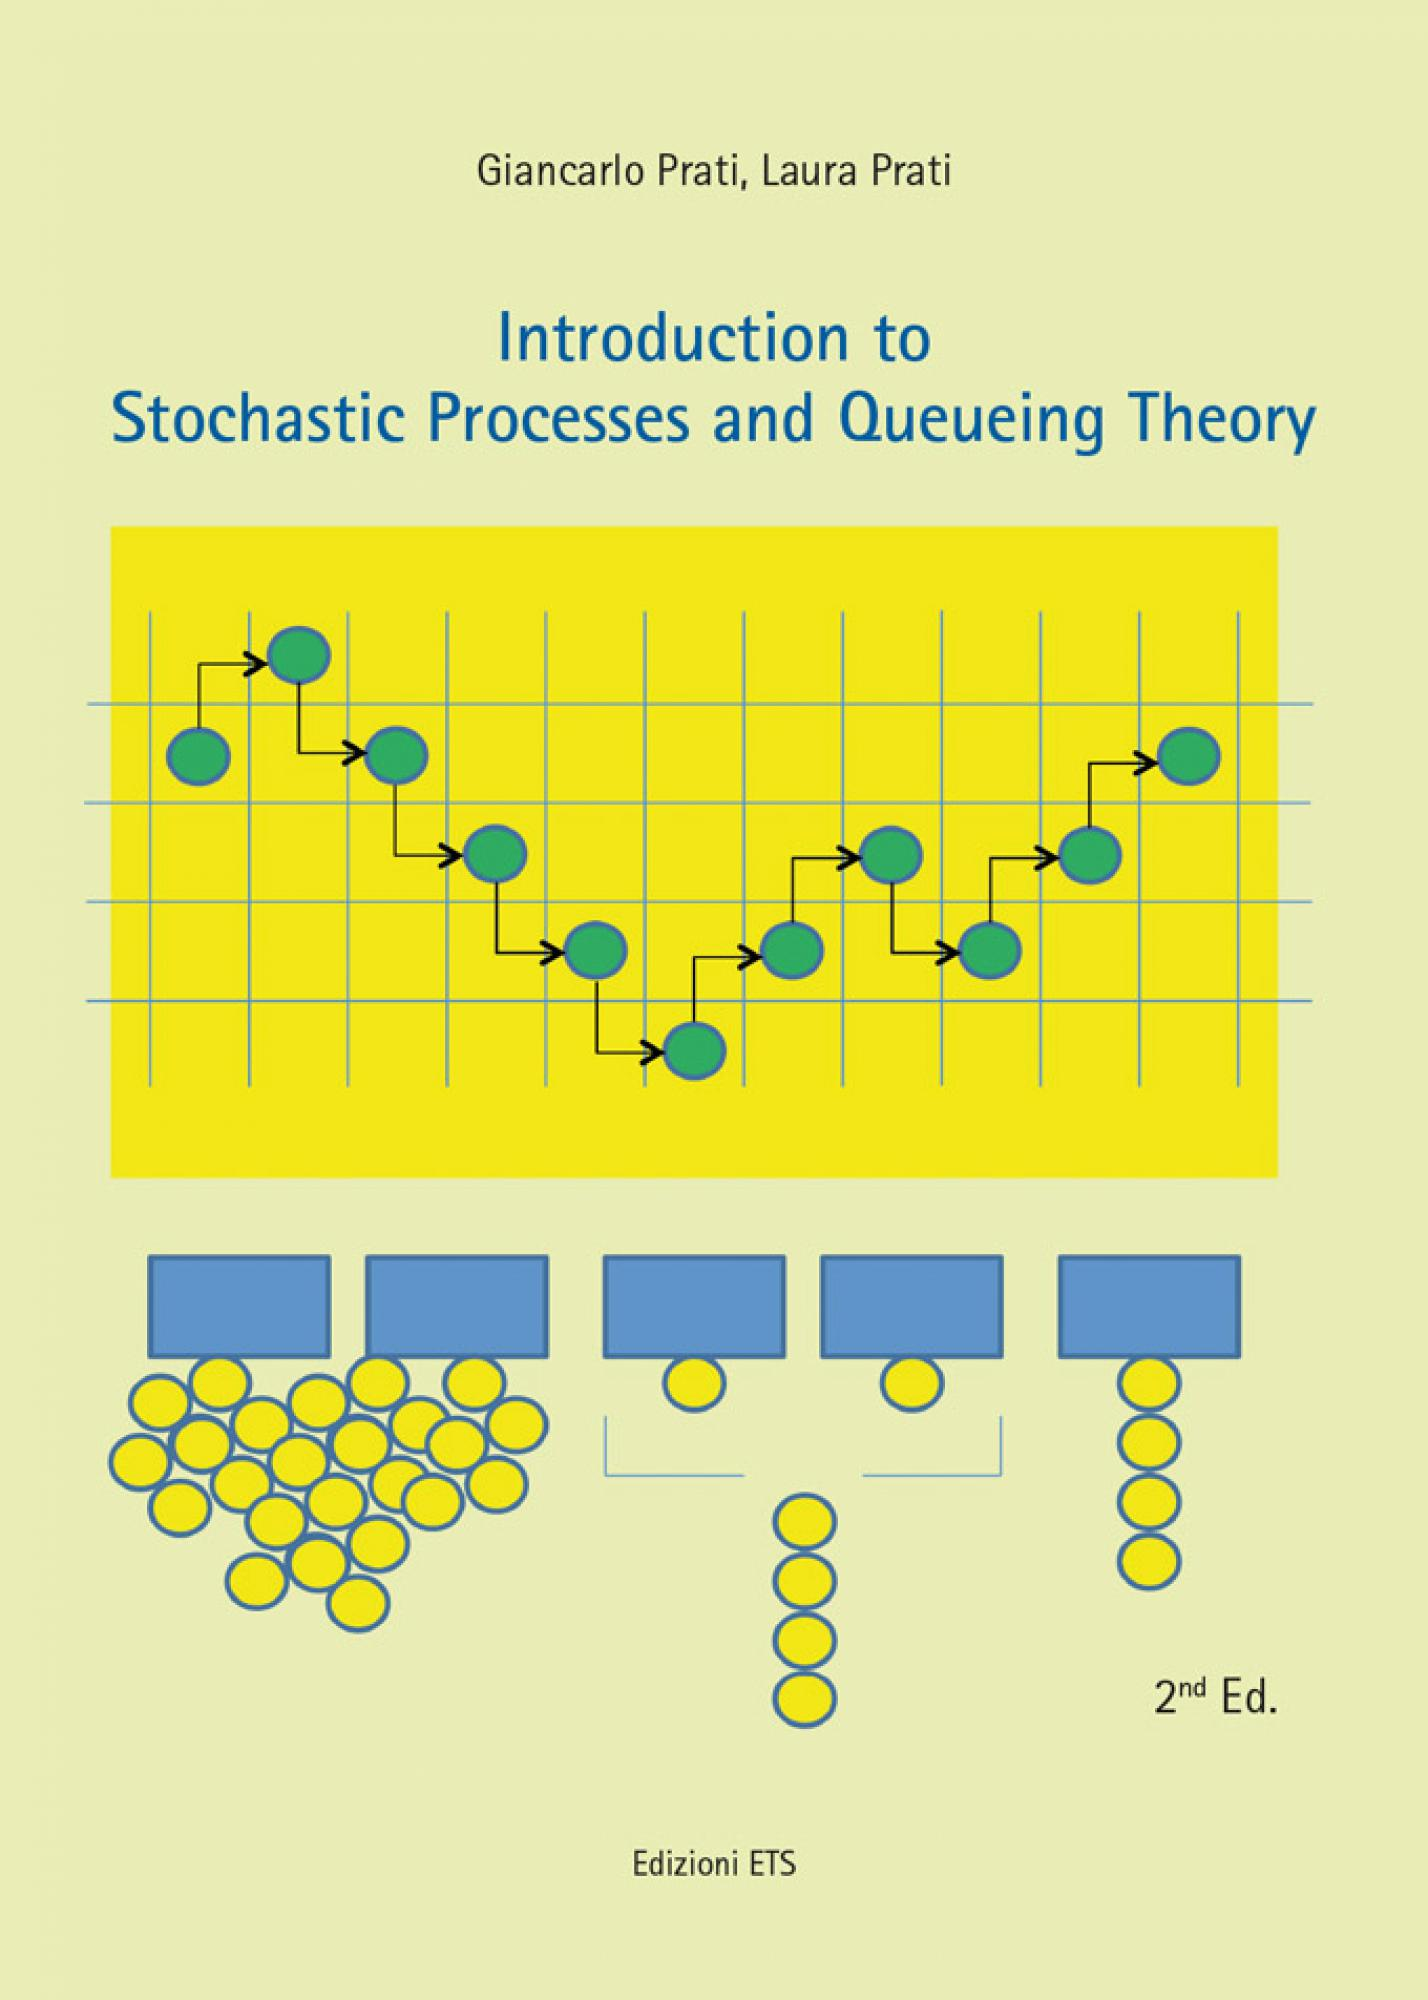 Introduction to Stochastic Processes and Queueing Theory.